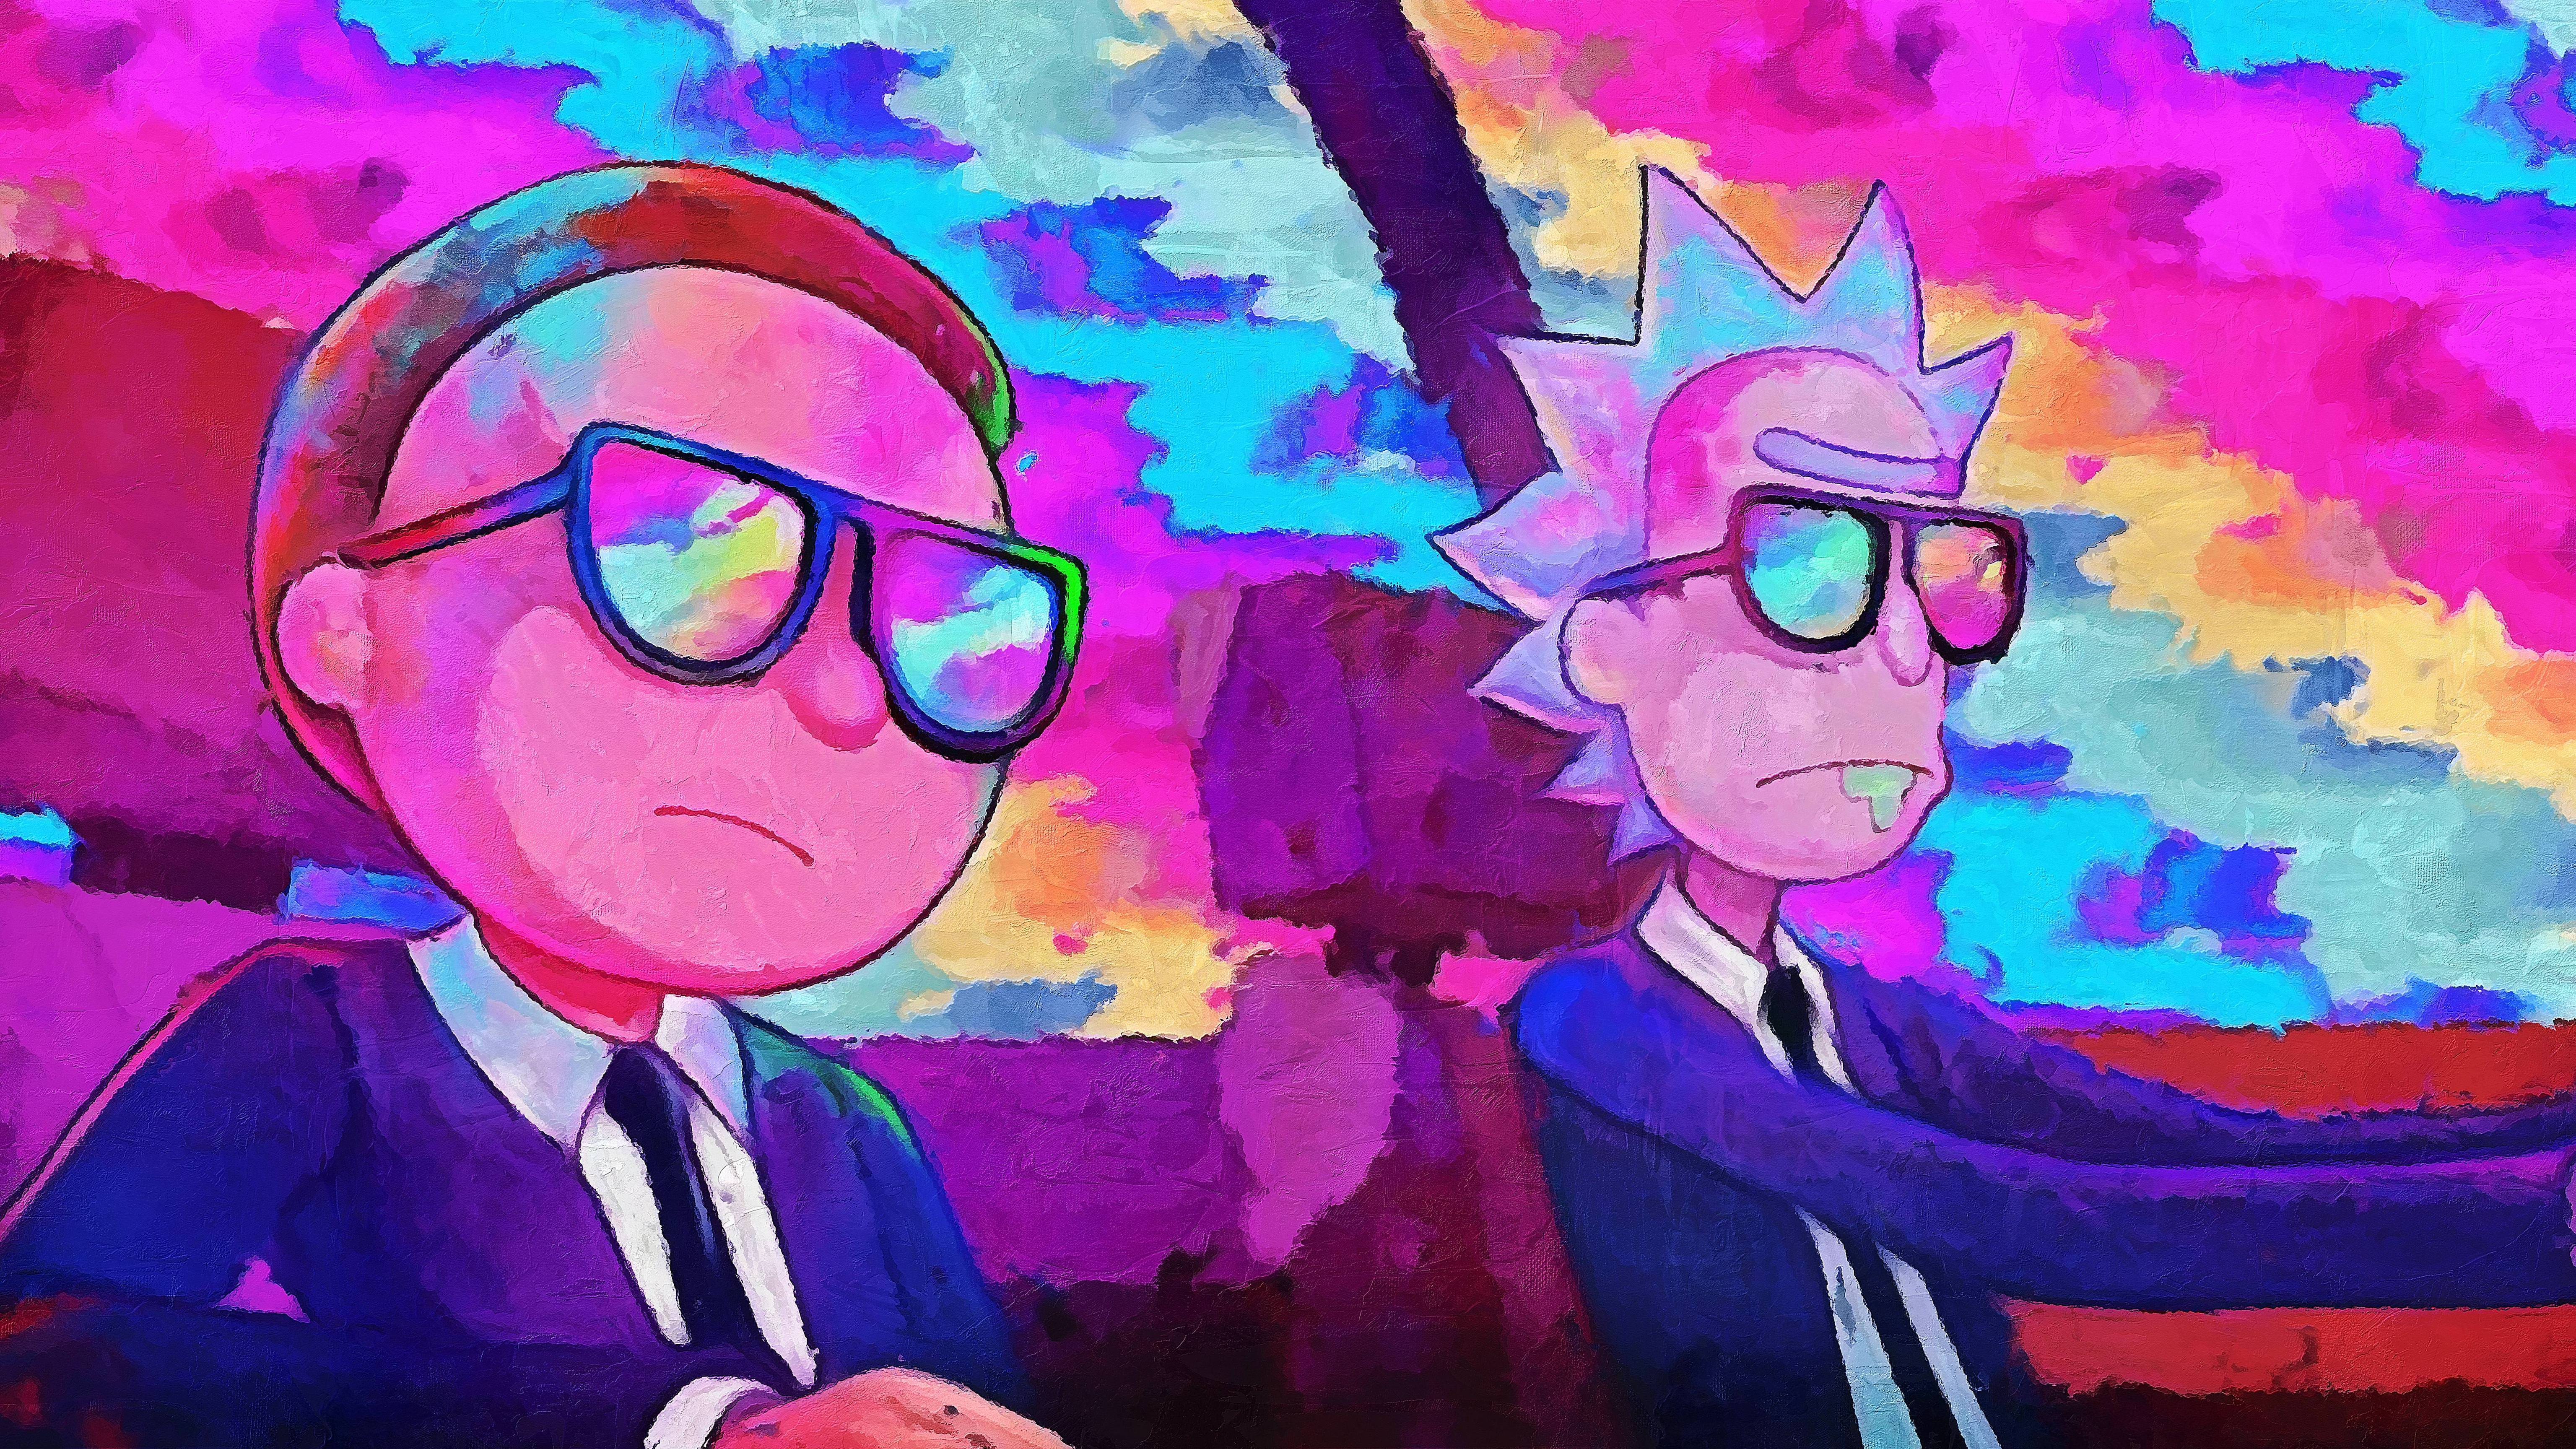 K Rick and Morty Wallpaper I Created From Run The Jewels